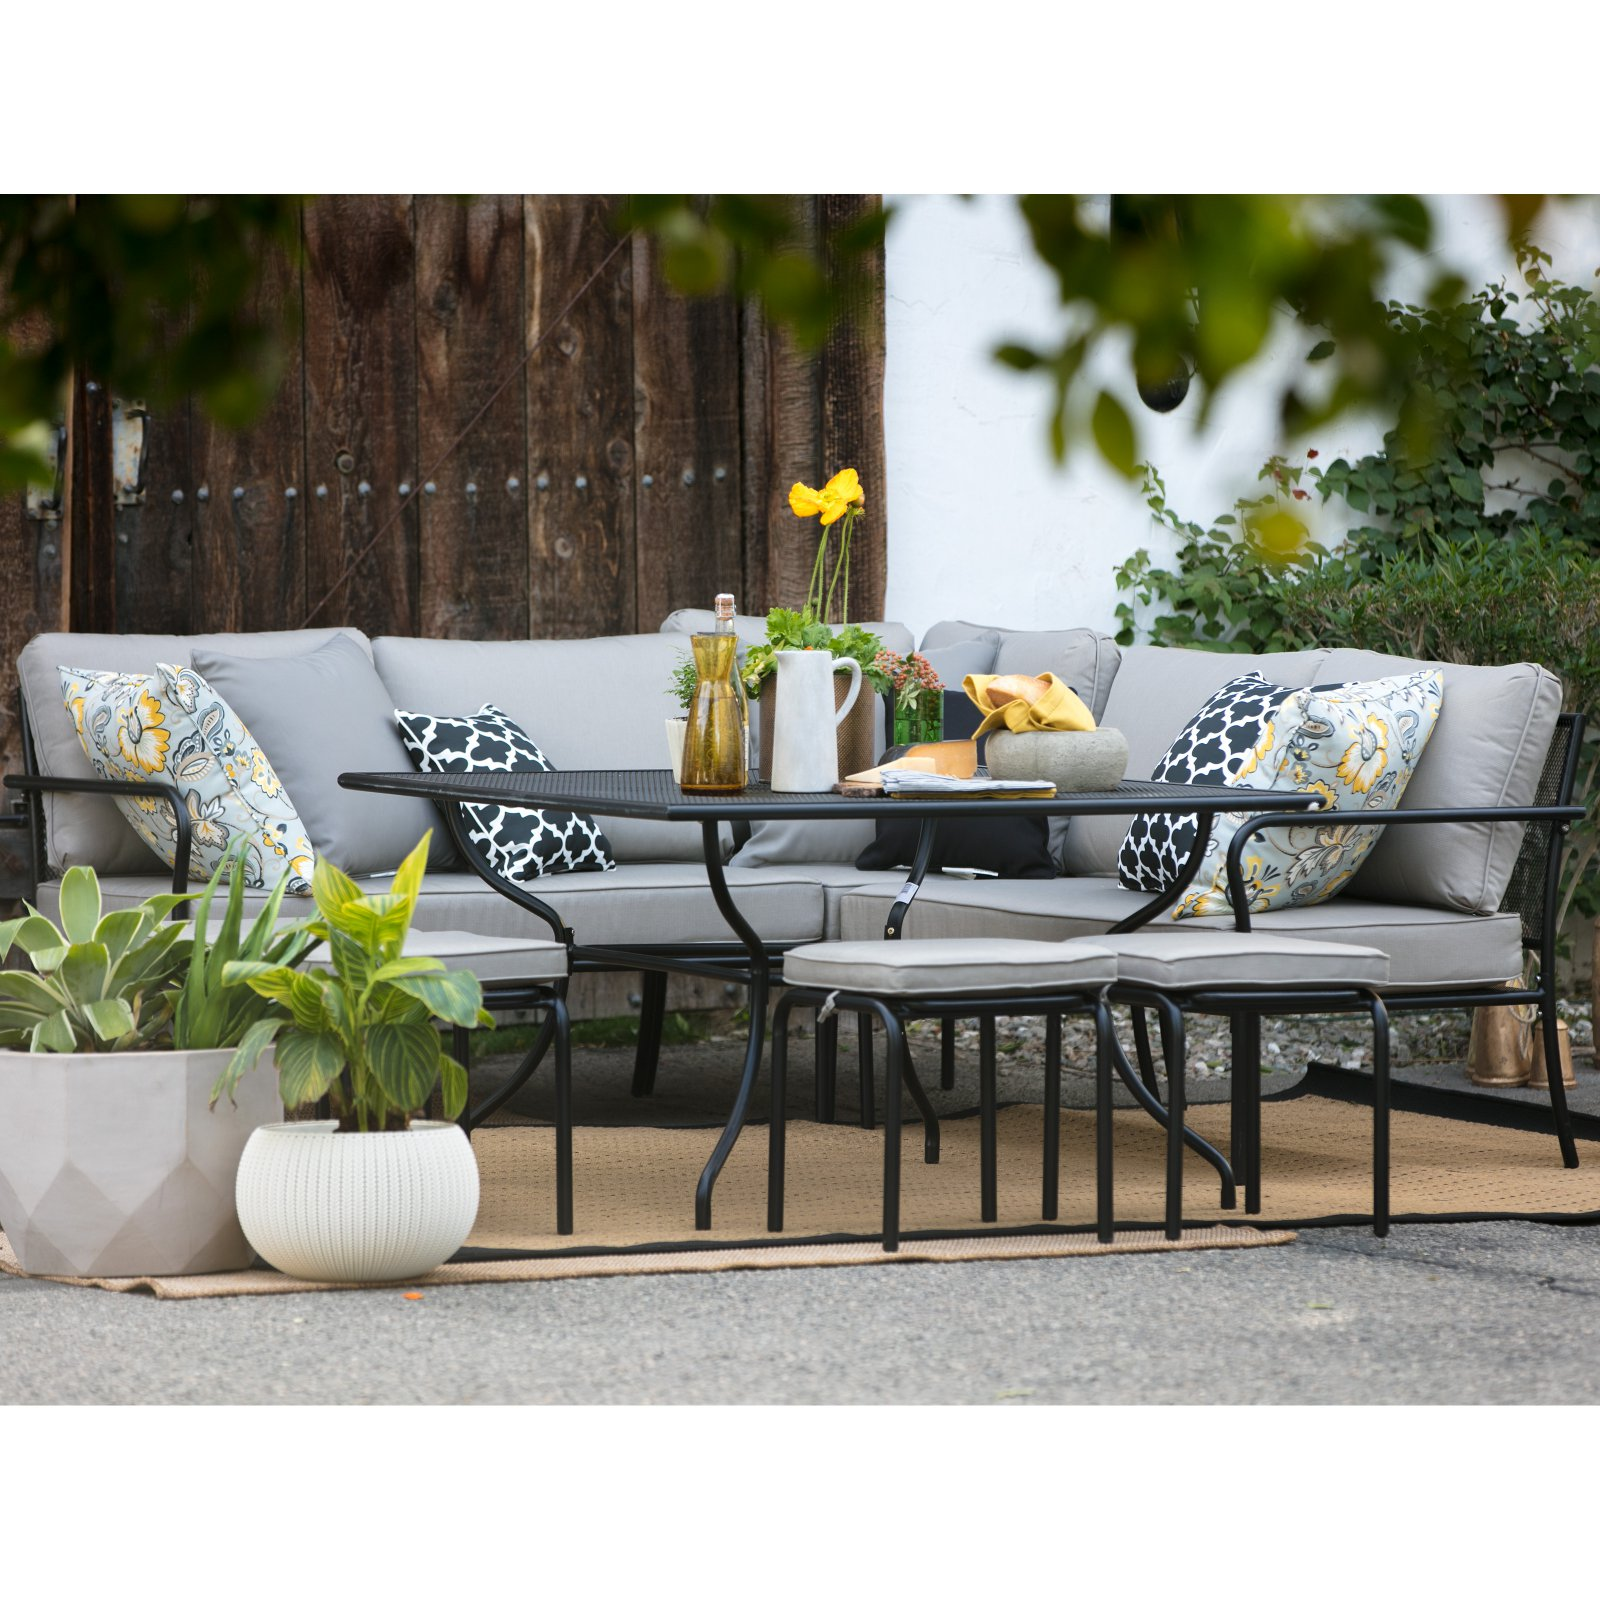 belham living parkville metal sofa sectional patio dining set genuine leather power reclining ...